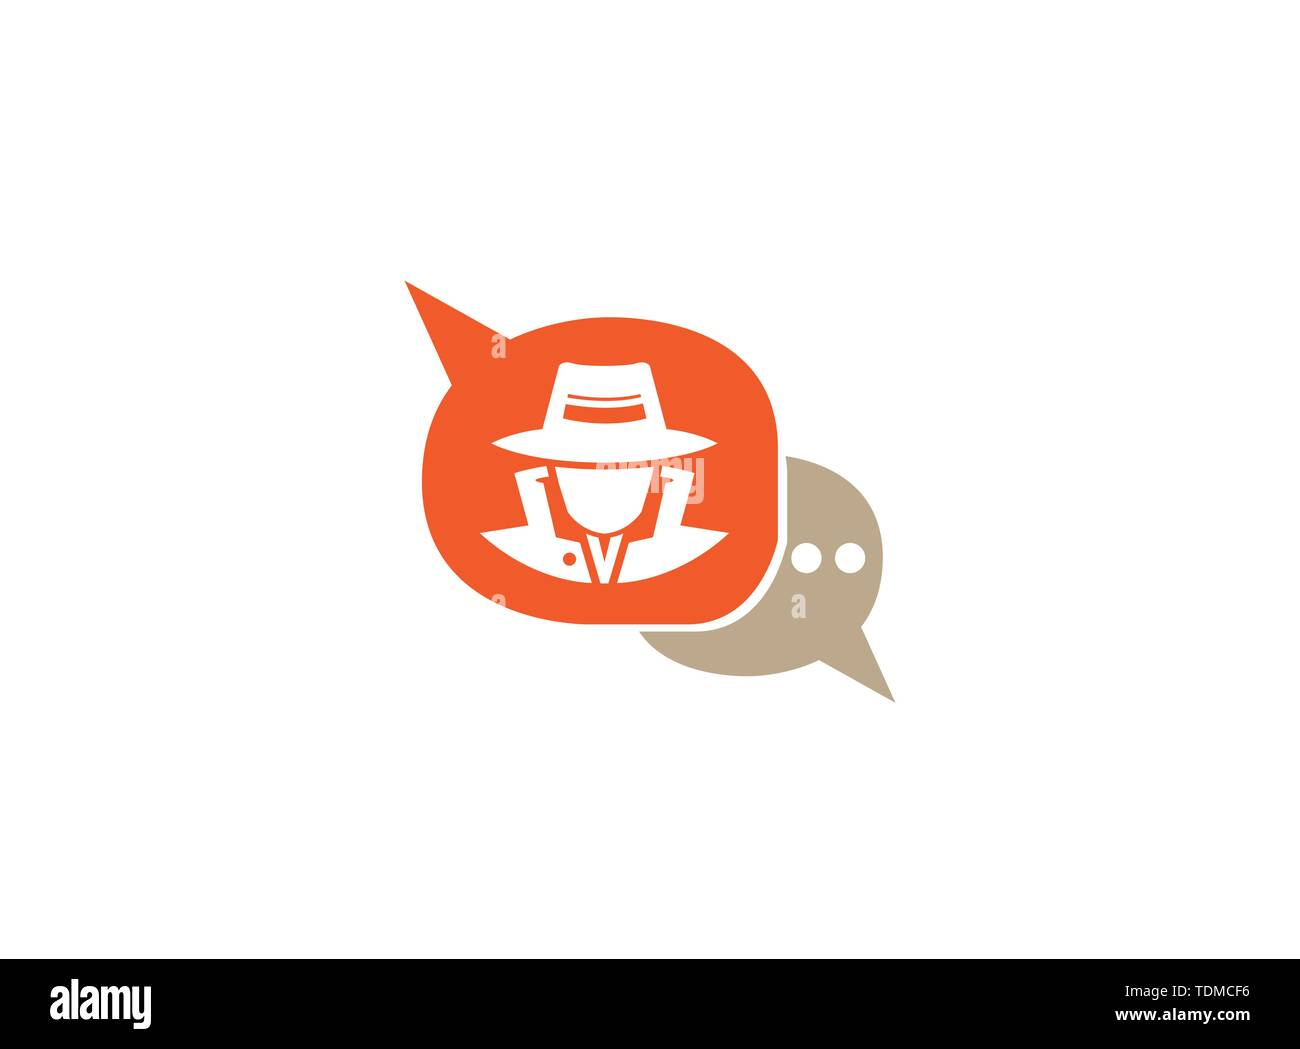 detective spy with hat in a chat icon for logo design illustration, secret job icon - Stock Vector